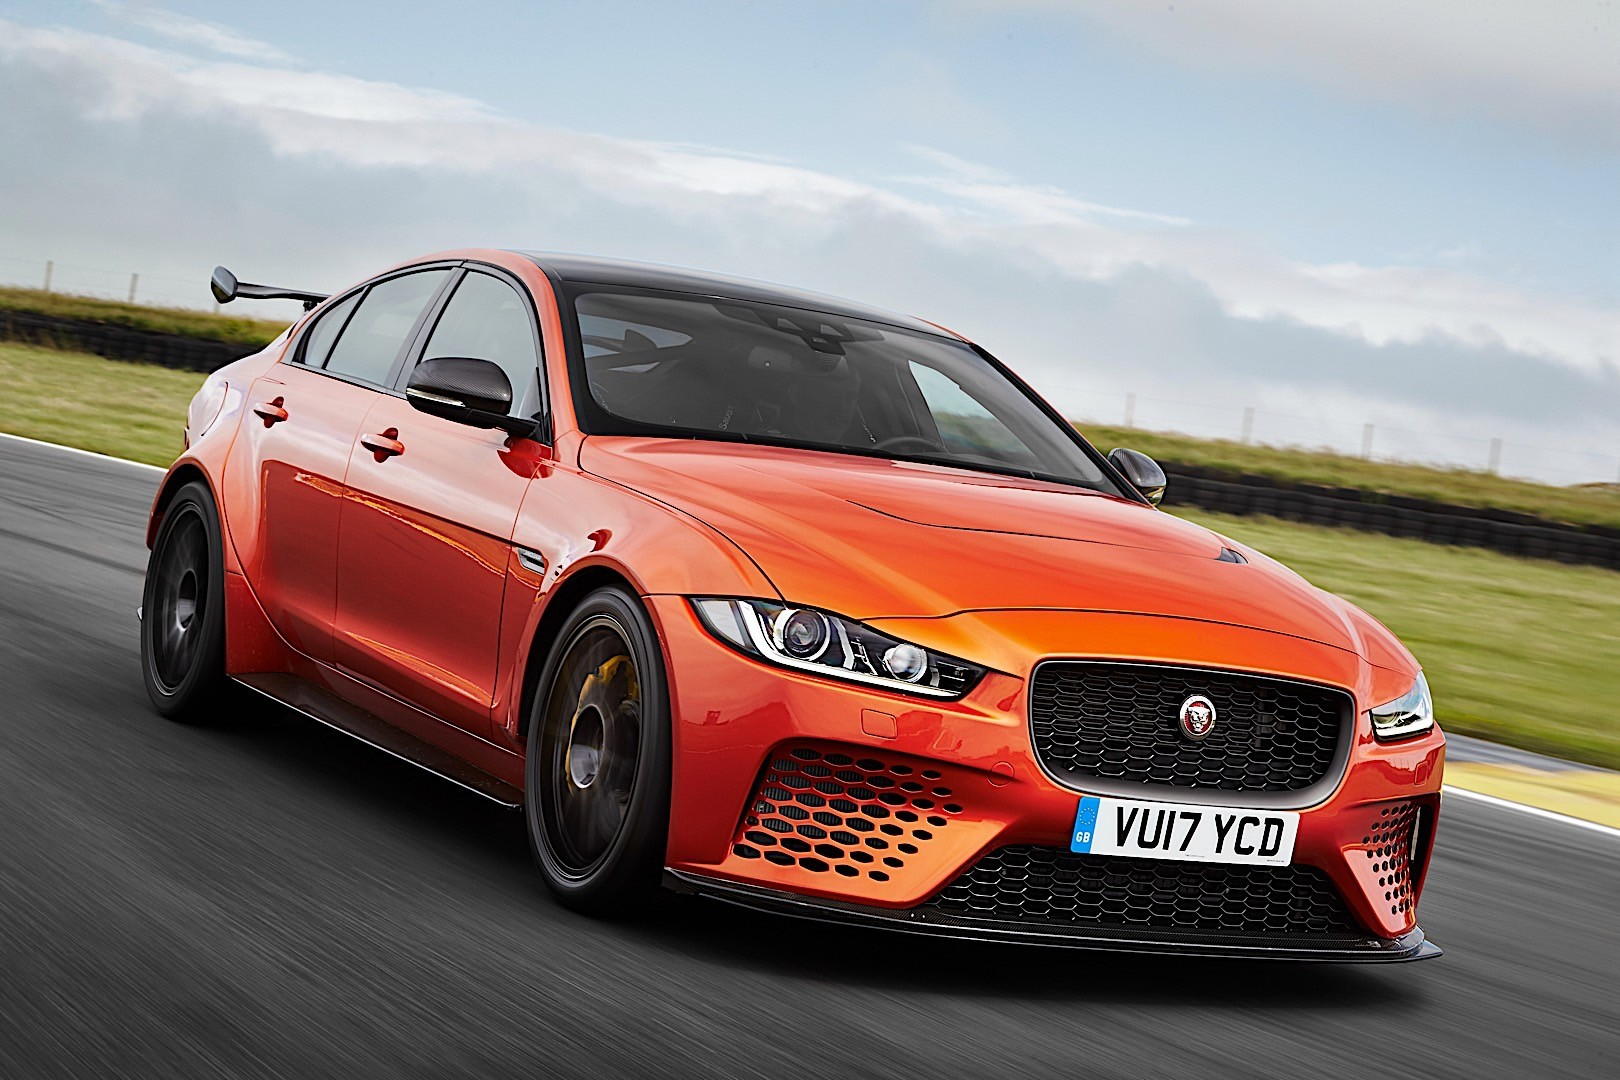 Jaguar Xe Sv Project 8 Jaguar Xe Sv Project 8 Specs And Photos 2017 2018 2019